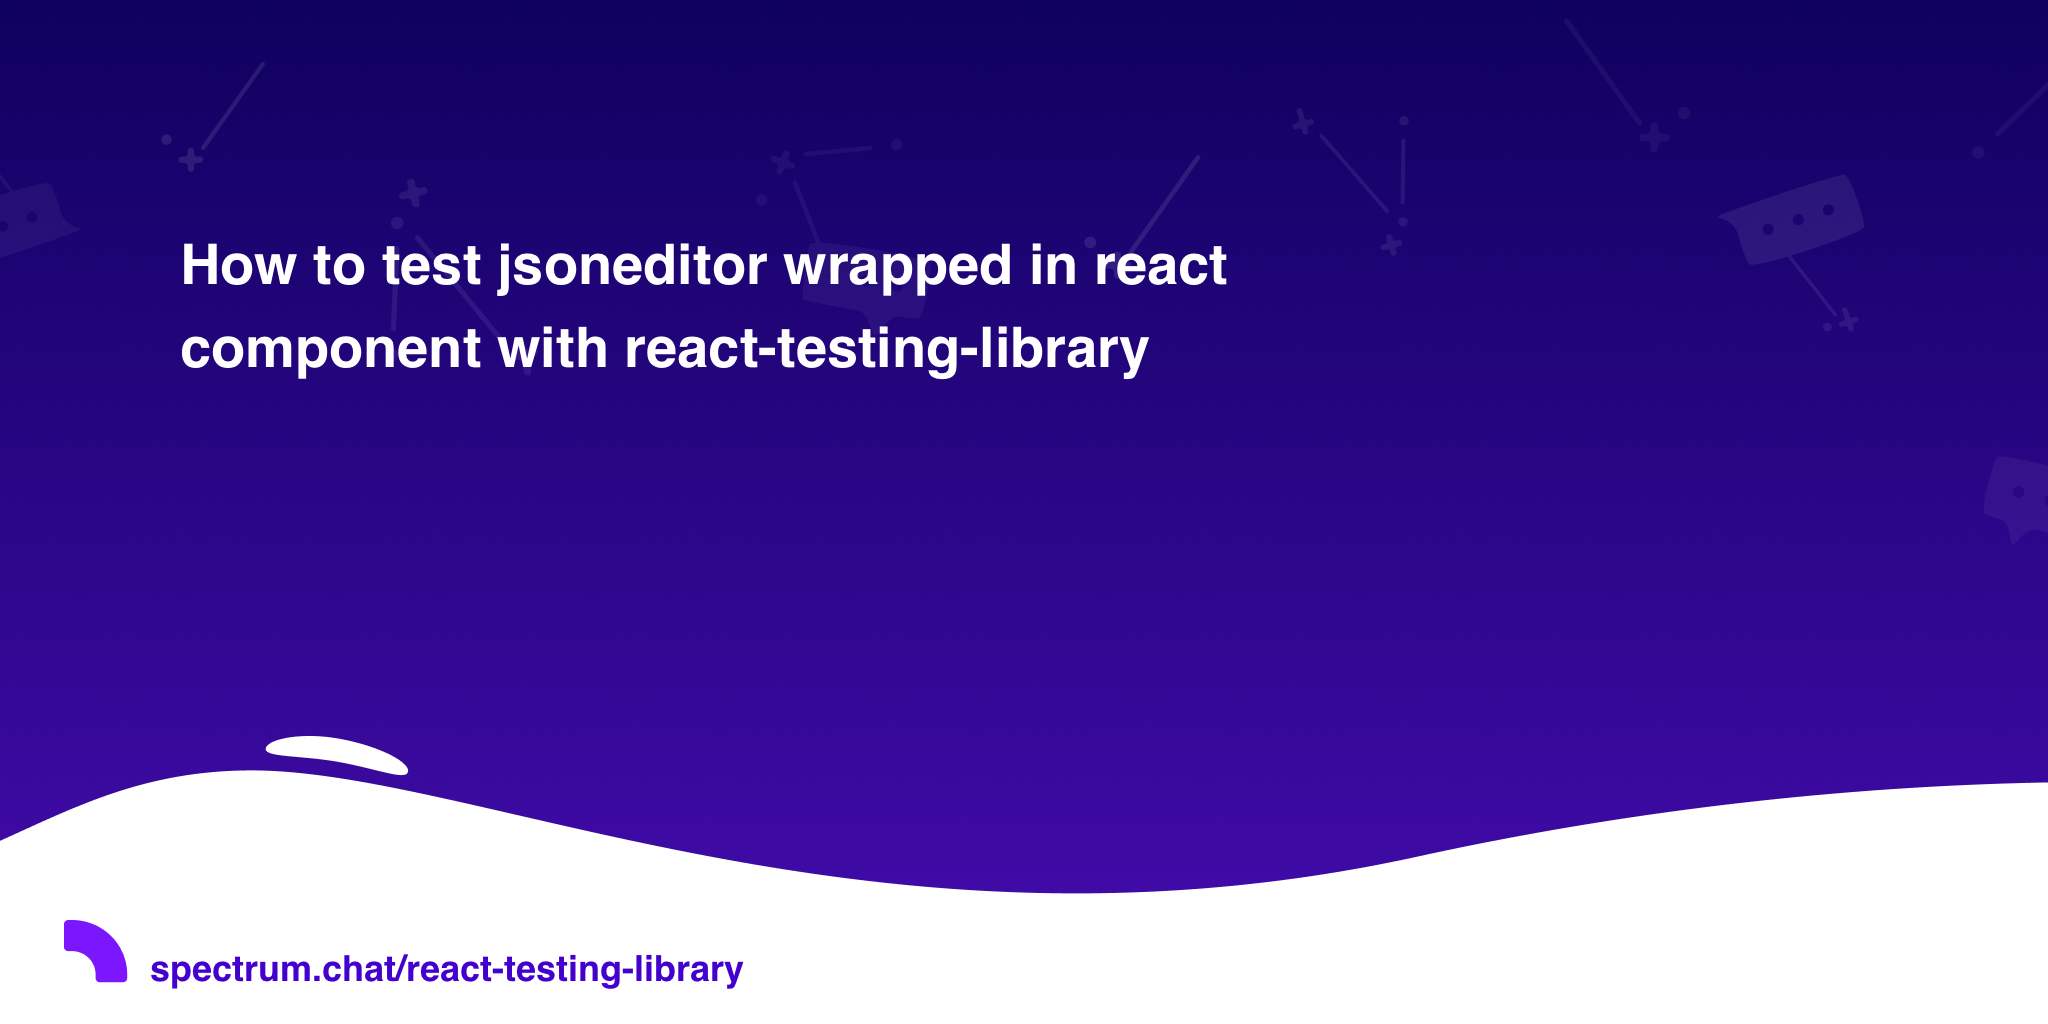 How to test jsoneditor wrapped in react component with react-testing